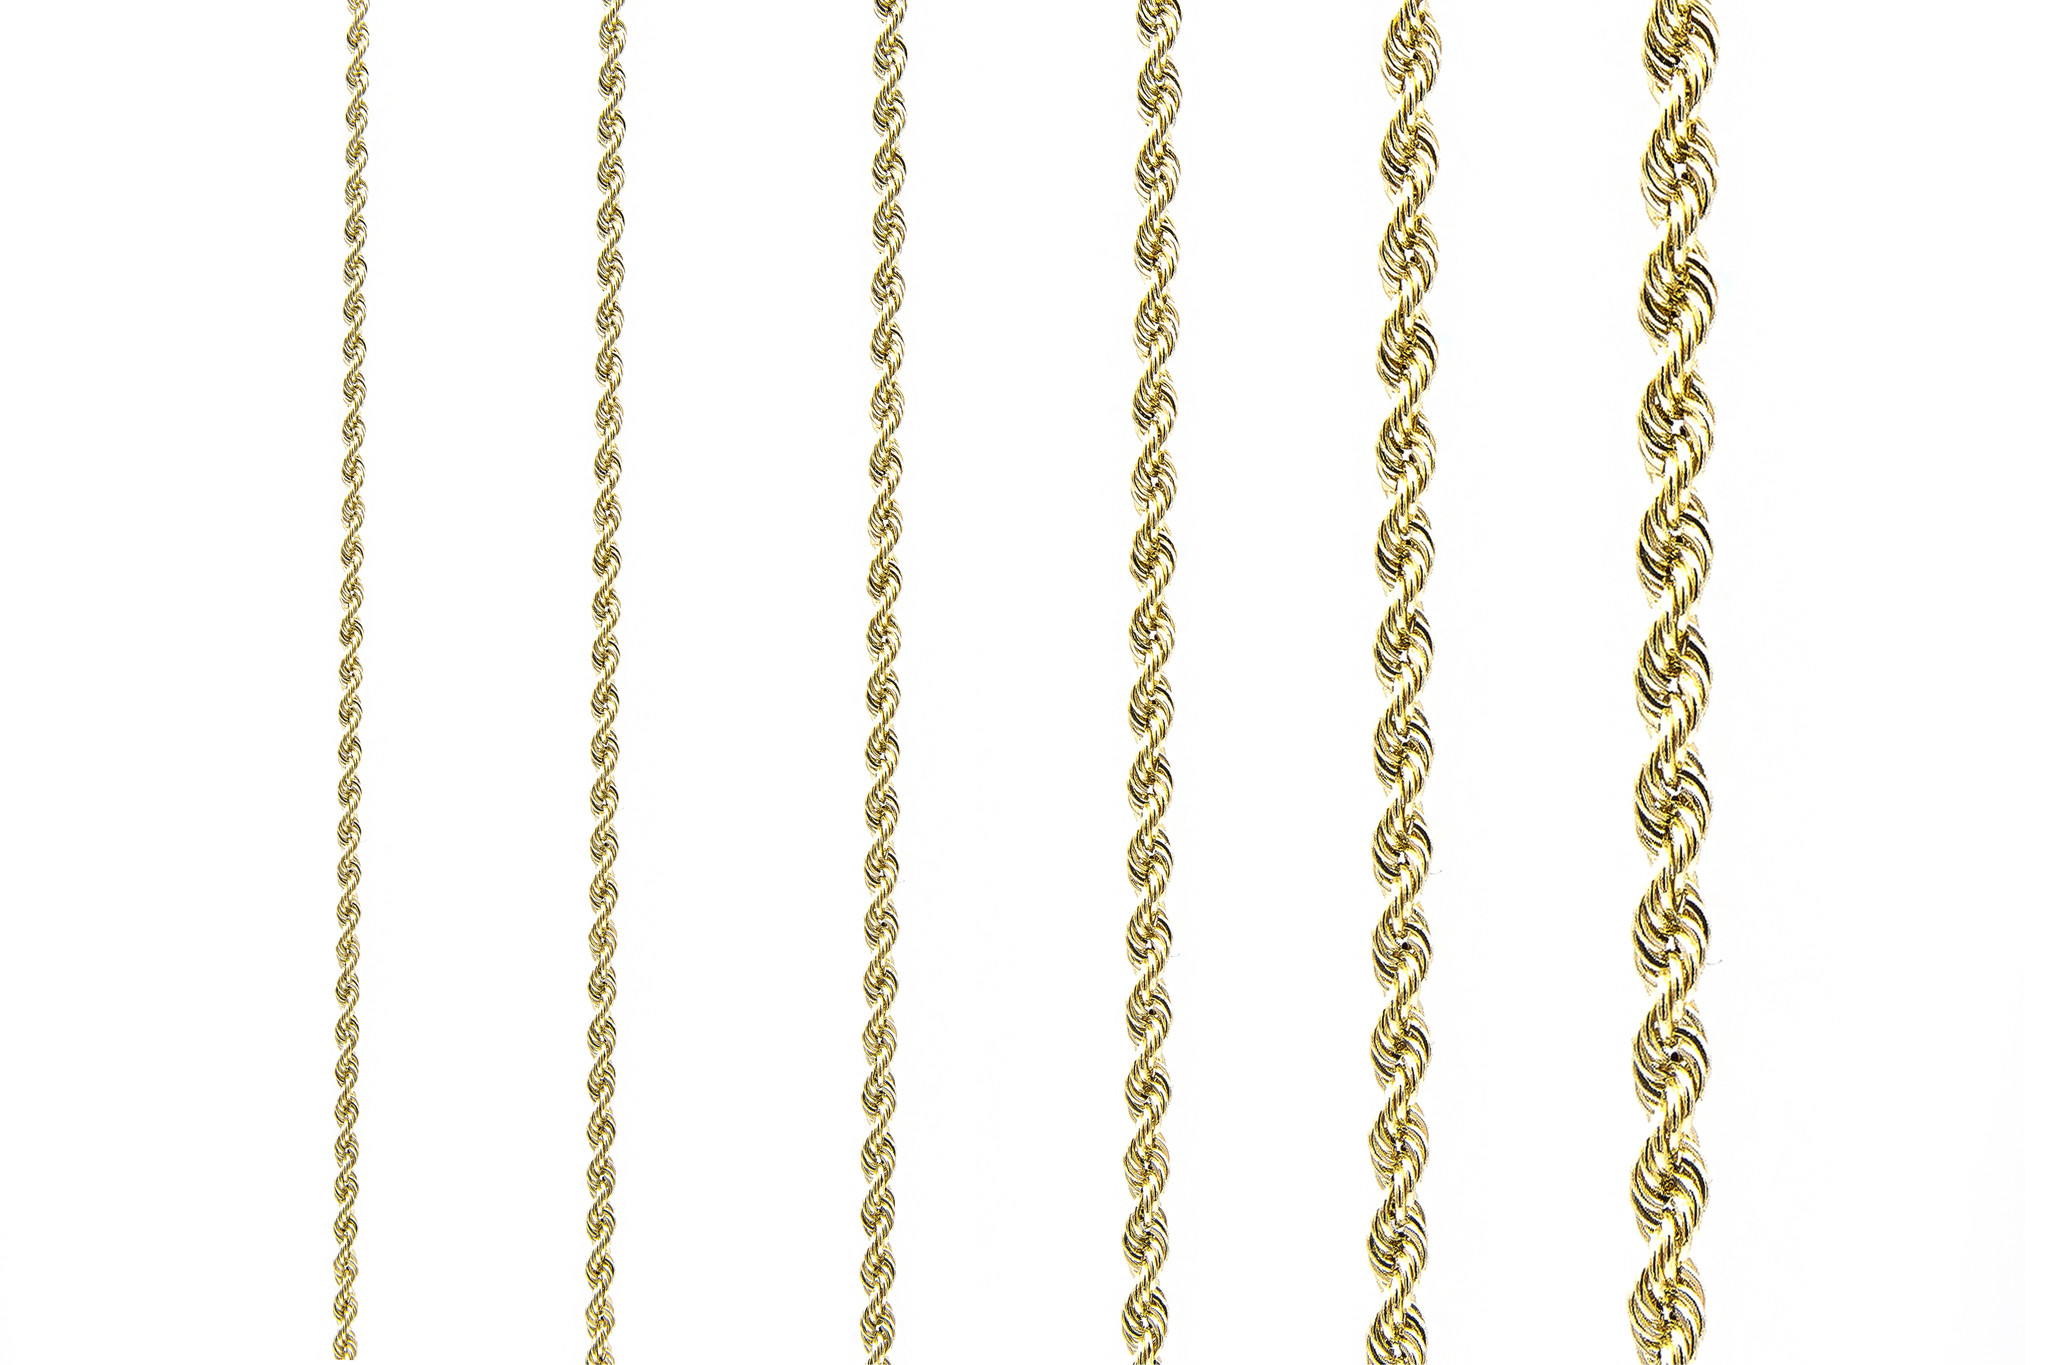 Rope chain witgoud 14kt 3.5mm-3